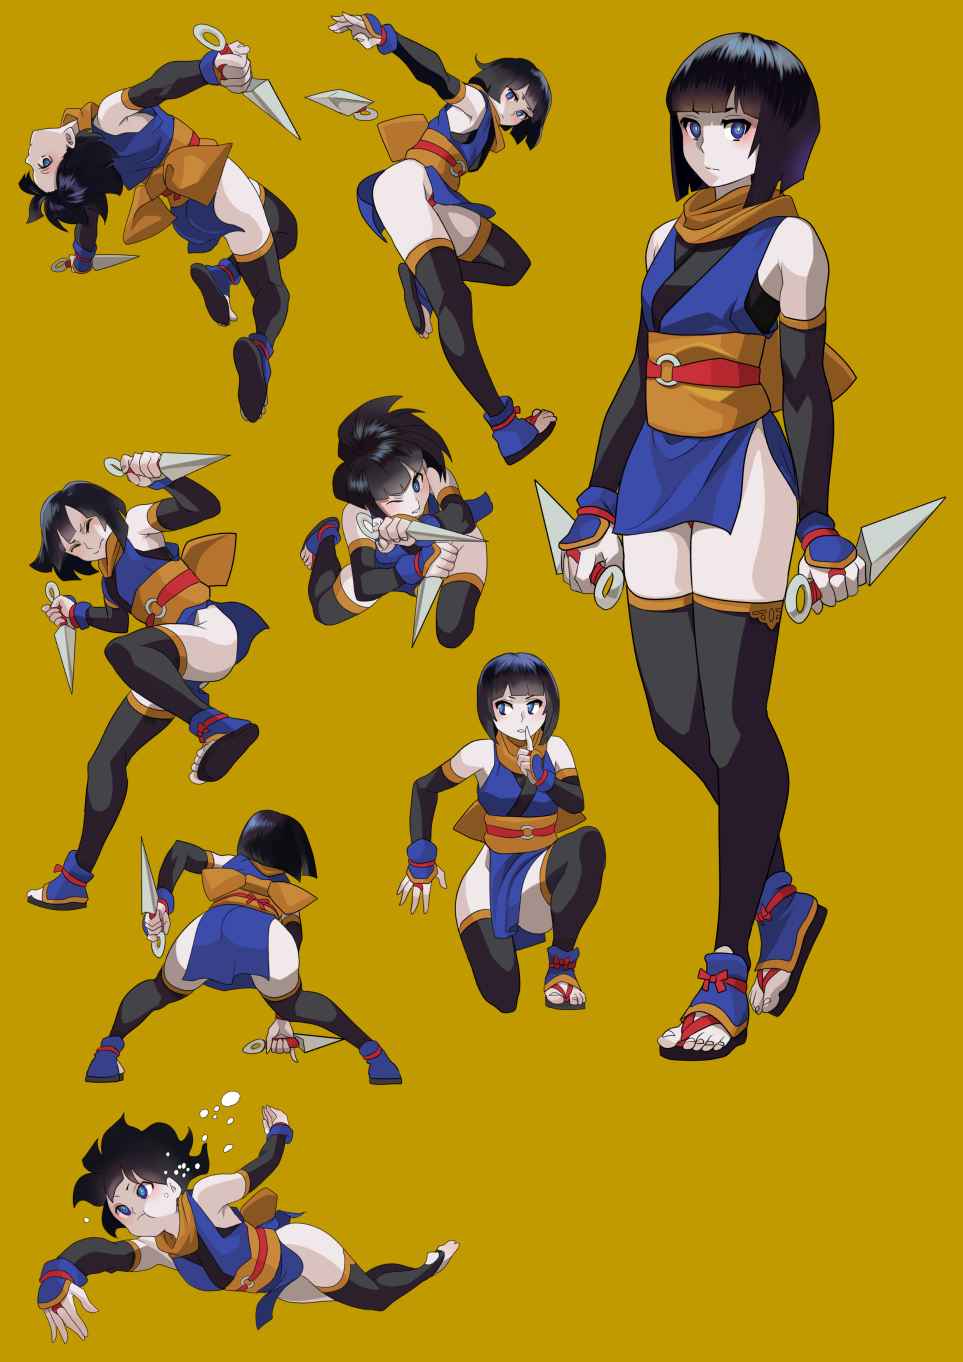 1girl :t action air_bubble arm_guards backflip bangs bare_shoulders black_hair black_legwear blue_eyes blue_kimono blunt_bangs bob_cut bubble closed_eyes detached_sleeves dual_wielding facing_away finger_to_mouth floating_hair freediving gesogeso hand_on_wall hand_up highres holding holding_breath holding_weapon index_finger_raised japanese_clothes jumping kimono kunai looking_at_viewer makeup mascara multiple_views ninja o-ring obi one_eye_closed one_knee original outstretched_arms pale_skin panties pantyshot parted_lips pelvic_curtain red_panties reverse_grip sandals sash scarf shoe_soles short_hair short_kimono shushing simple_background spread_arms squatting standing standing_on_one_leg stirrup_legwear submerged swimming throwing toeless_legwear underwear weapon wince yellow_background